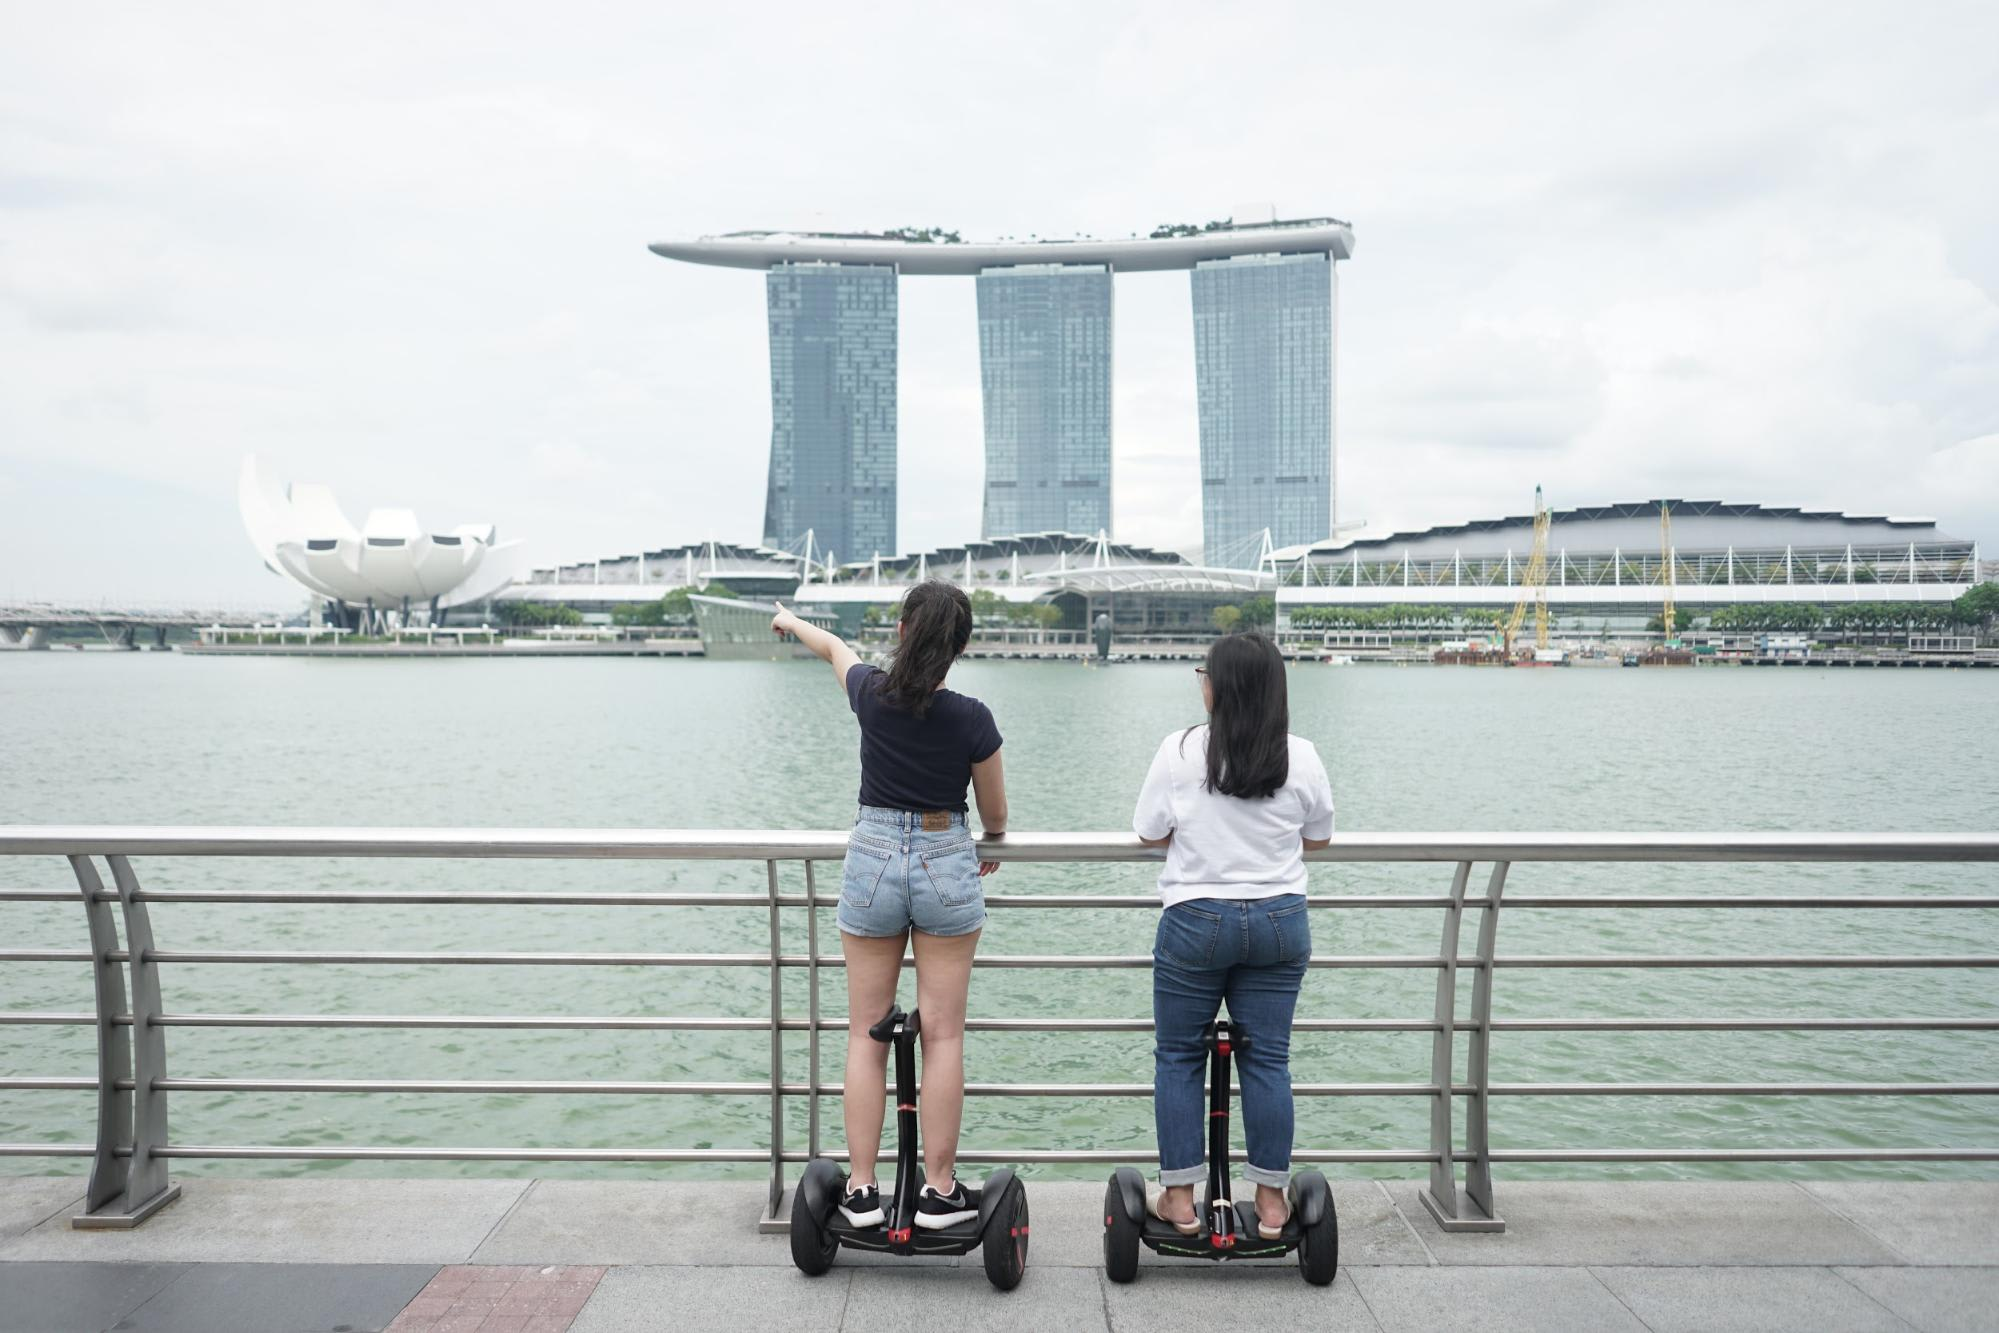 Singapore Marina Bay Sands Segway